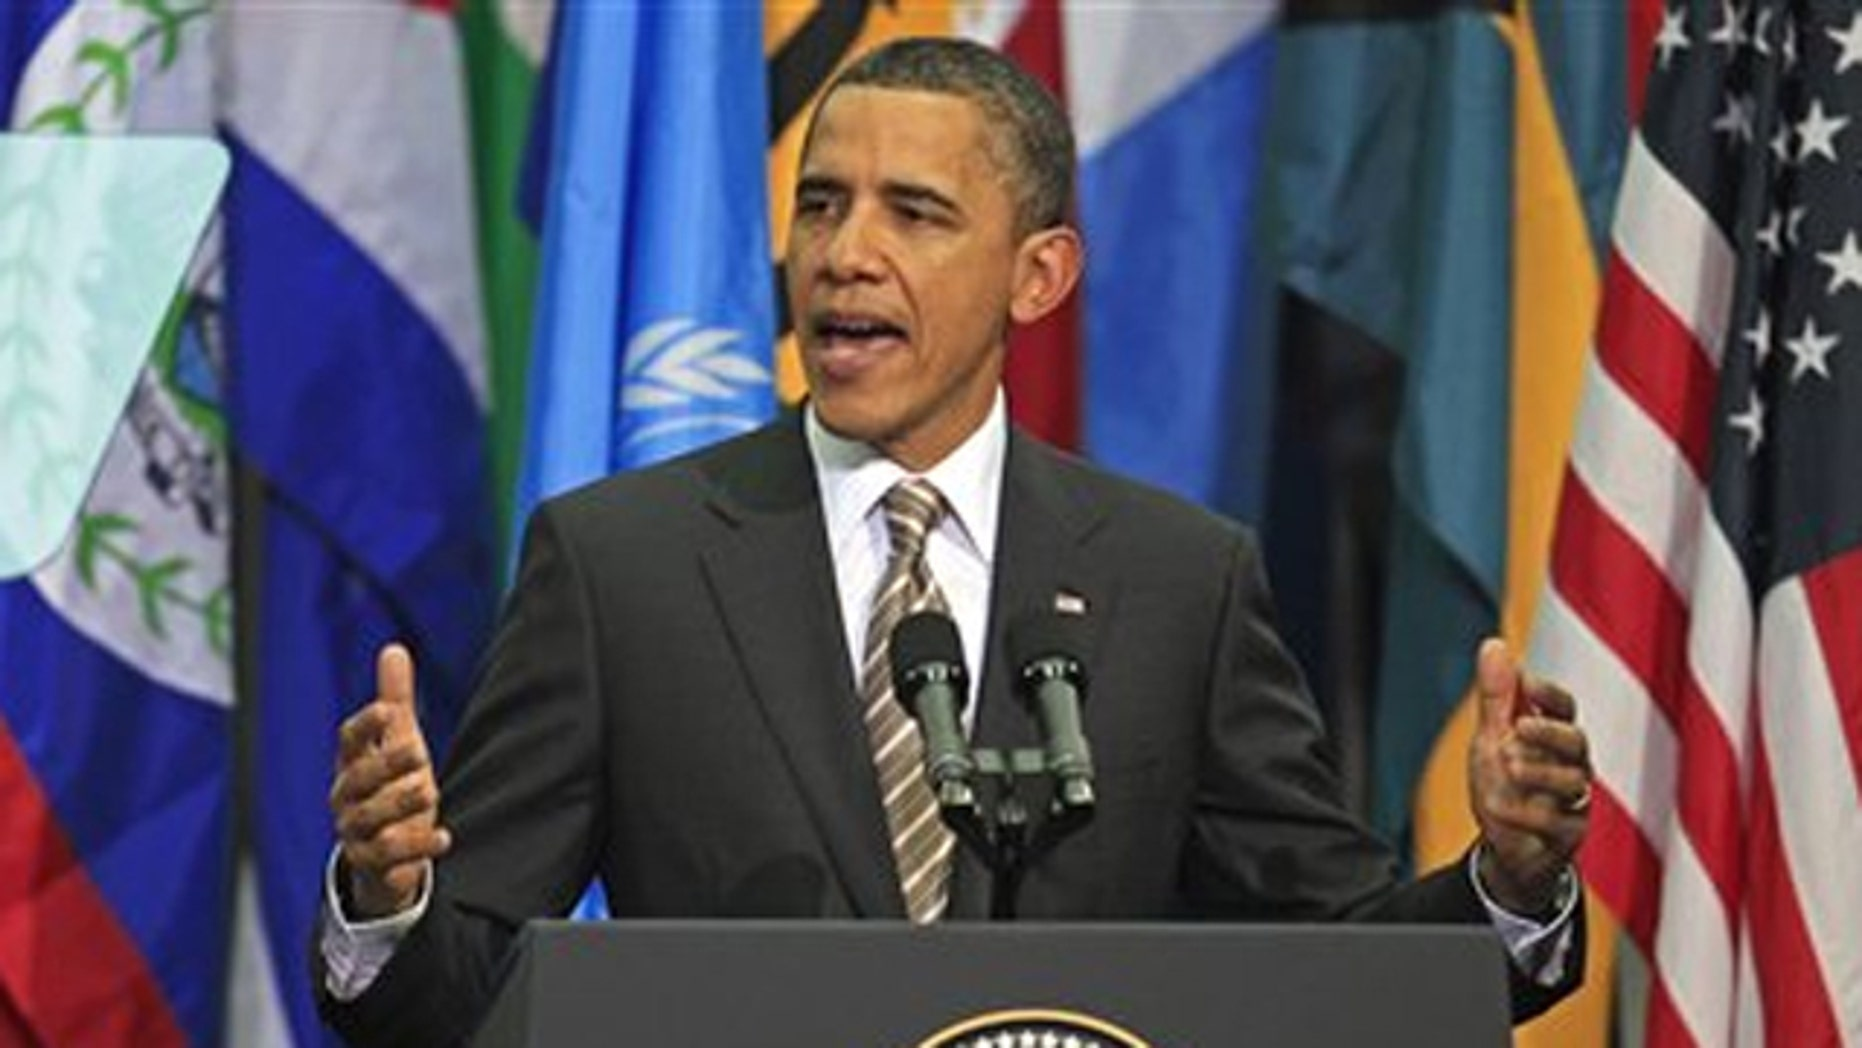 Monday: President Obama delivers a speech at Centro Cultural La Moneda Palace in Santiago, Chile.